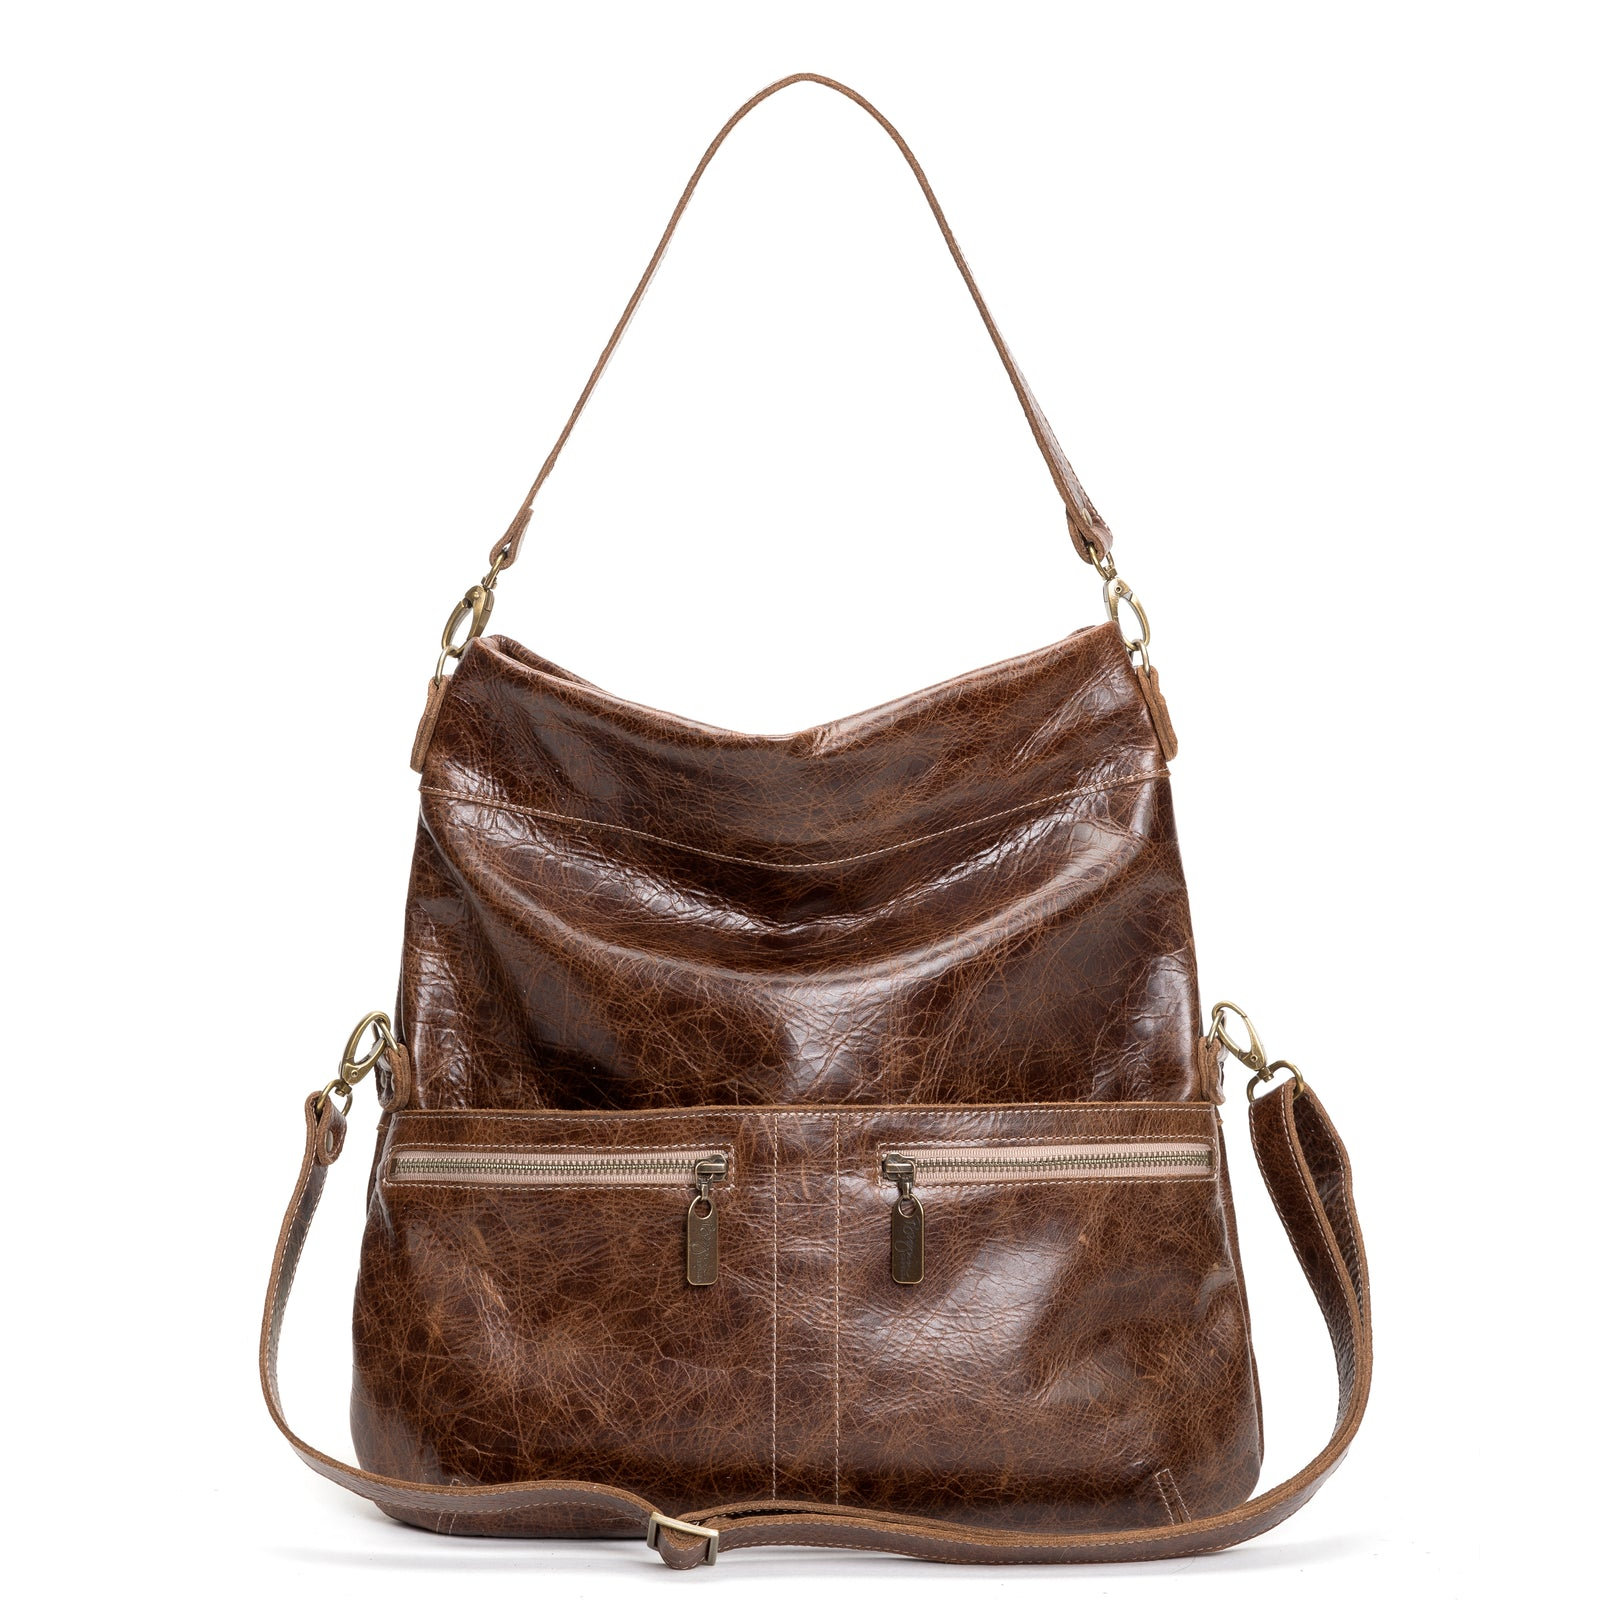 Lauren Crossbody - Driftwood - Brynn Capella, Large Crossbody